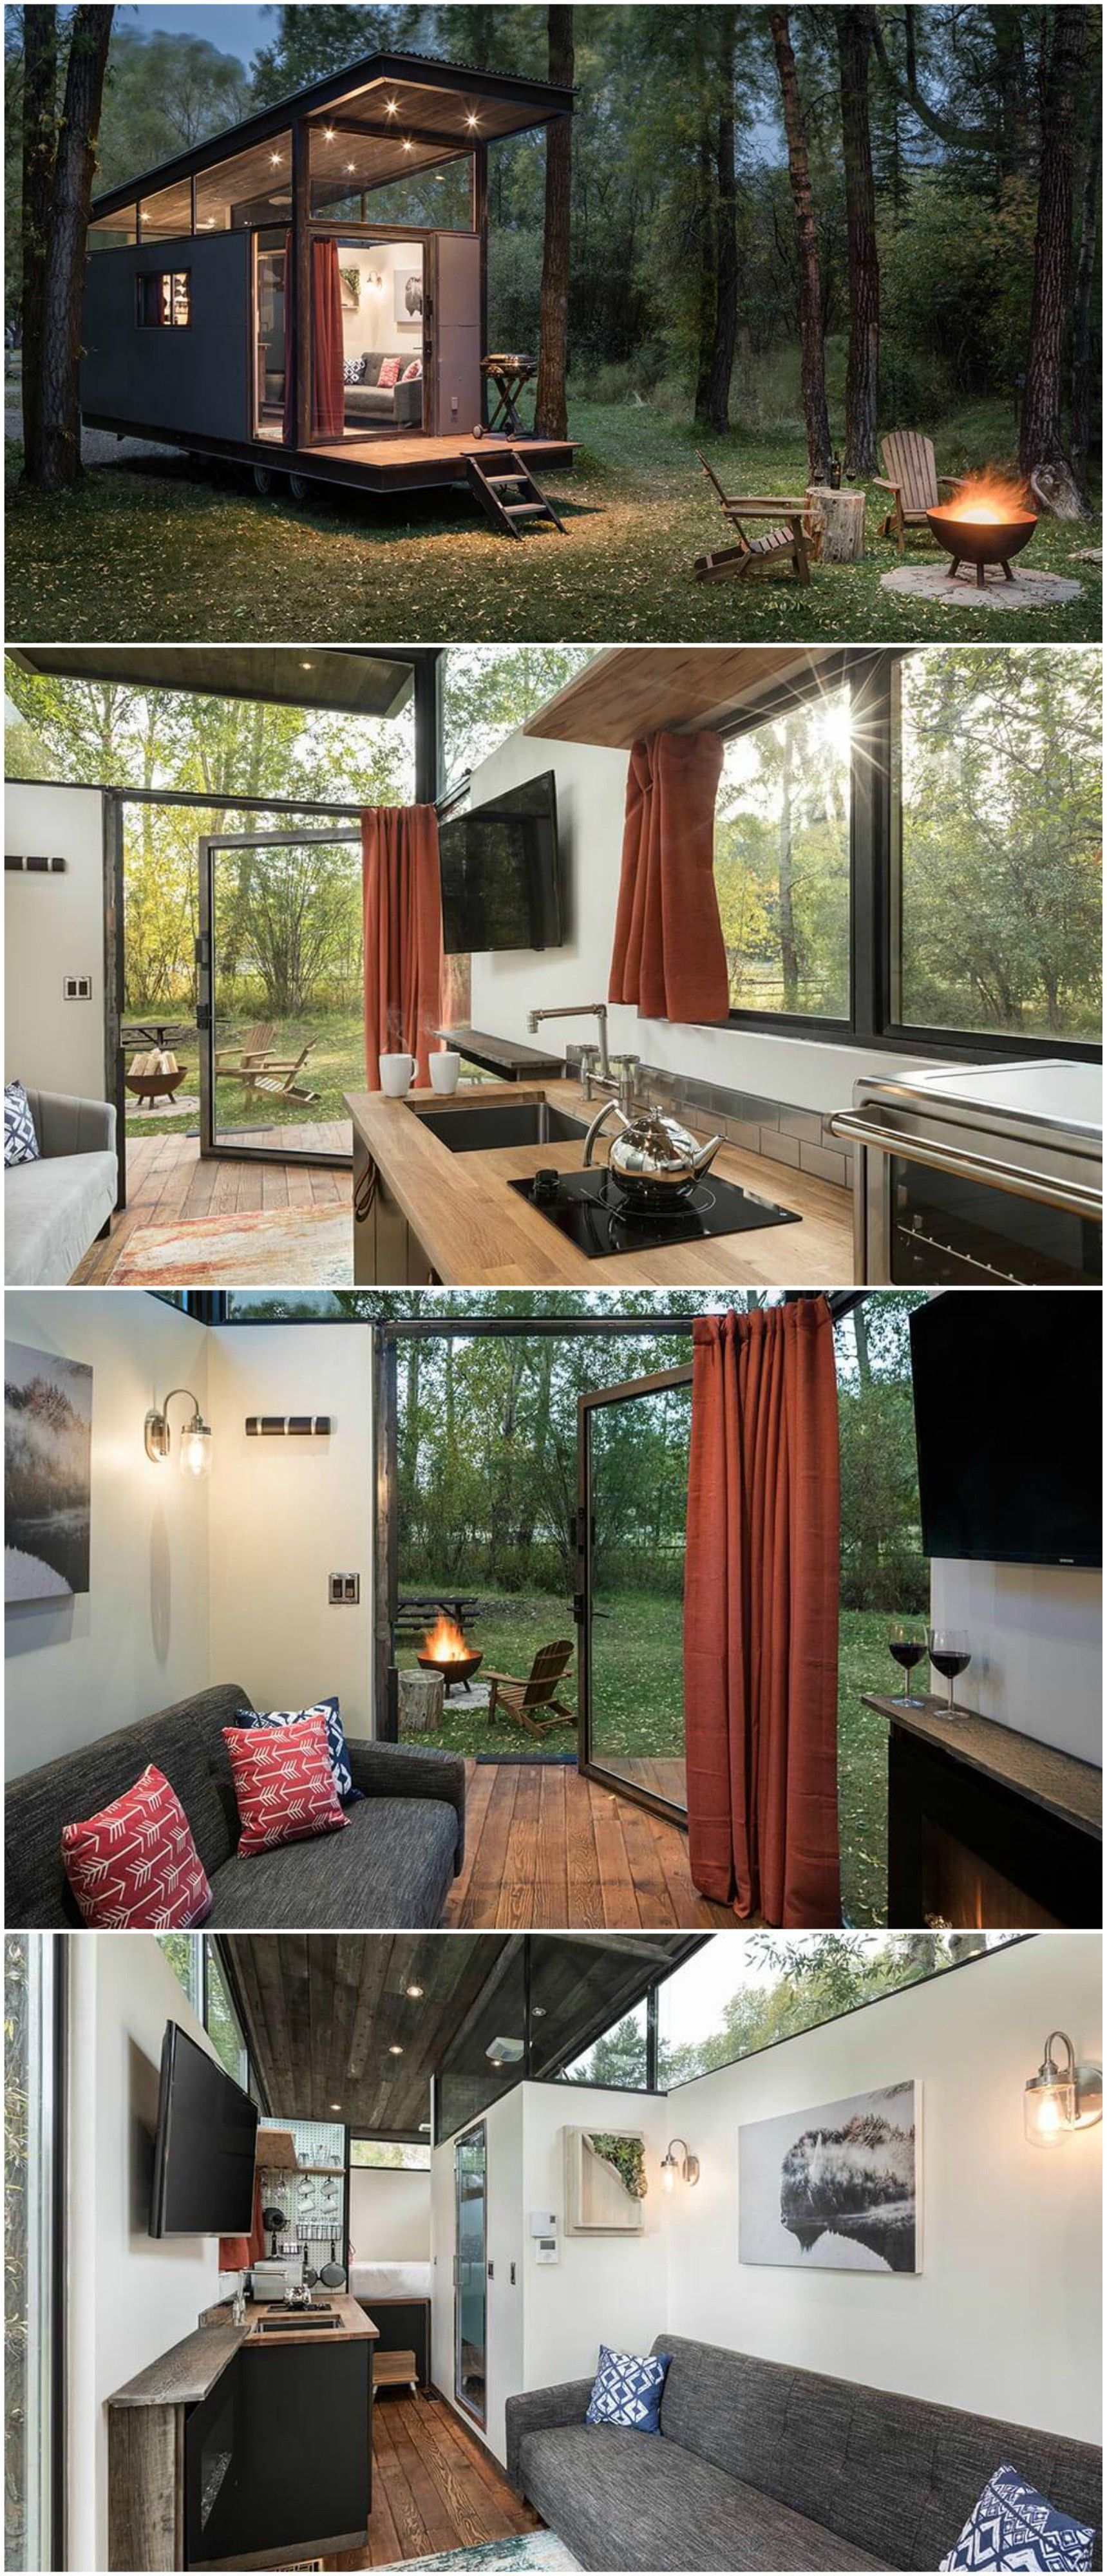 Amazing Home Porn pin on tiny house porn